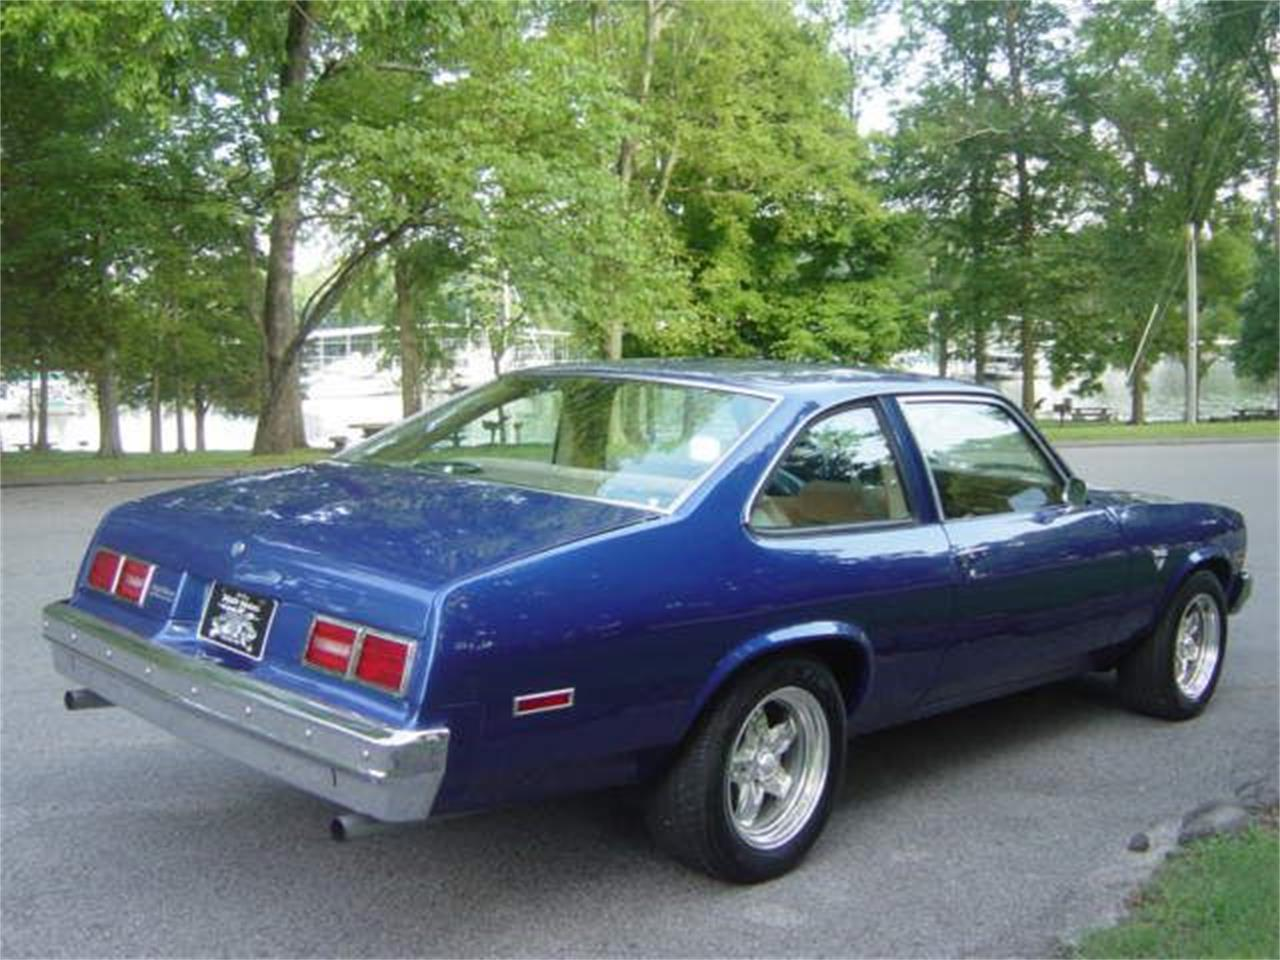 Large Picture of '77 Nova - $10,900.00 Offered by Maple Motors - NRMP